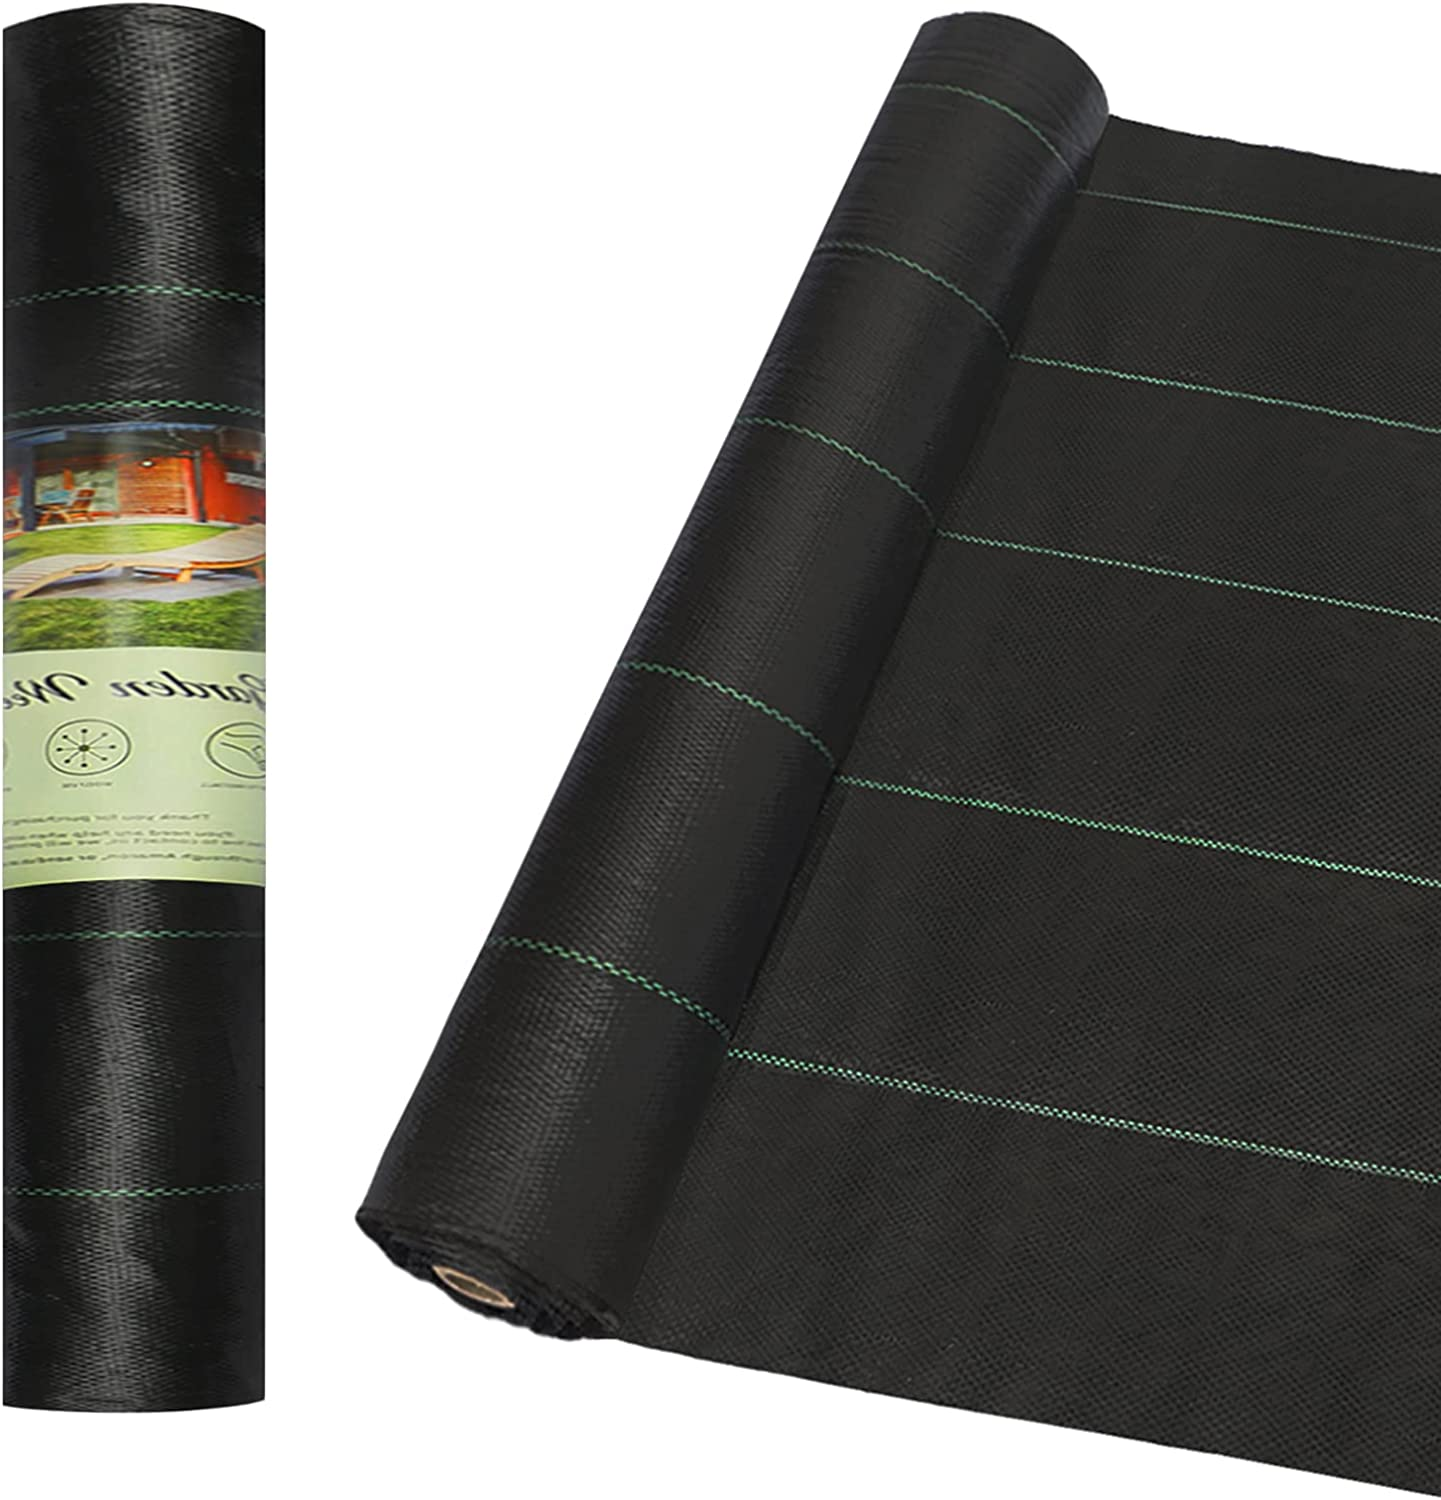 COLORFULHOPE 4ft x New products, world's highest quality popular! 250ft Weed Limited Special Price Landscape Fabric Hea 3.2oz Barrier